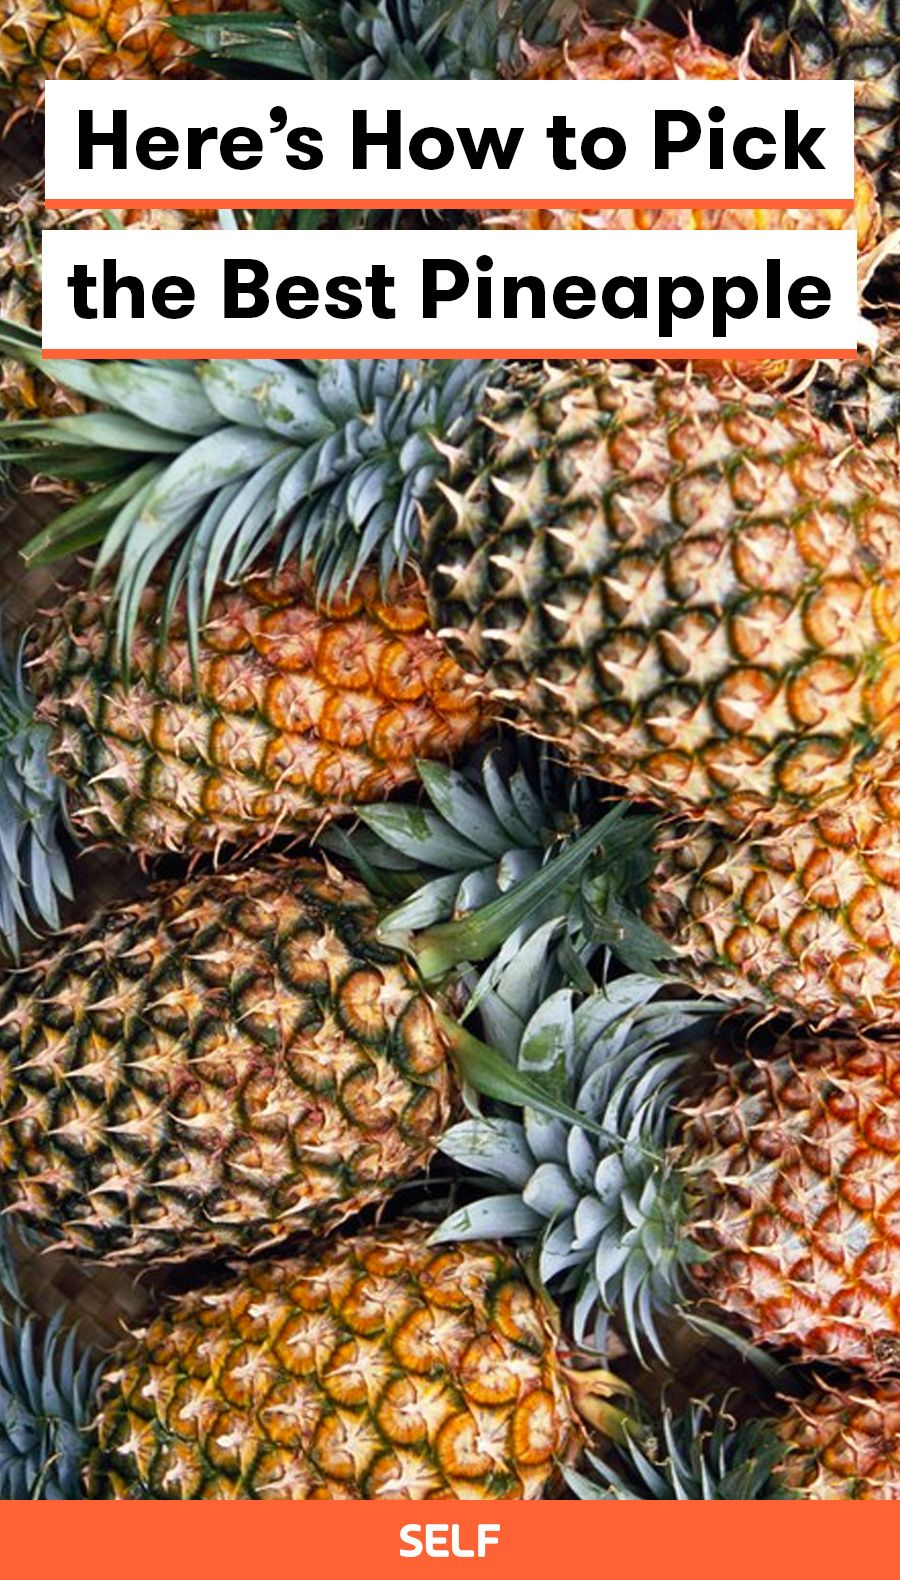 How to Pick the Best Pineapple Pineapple nutrition facts